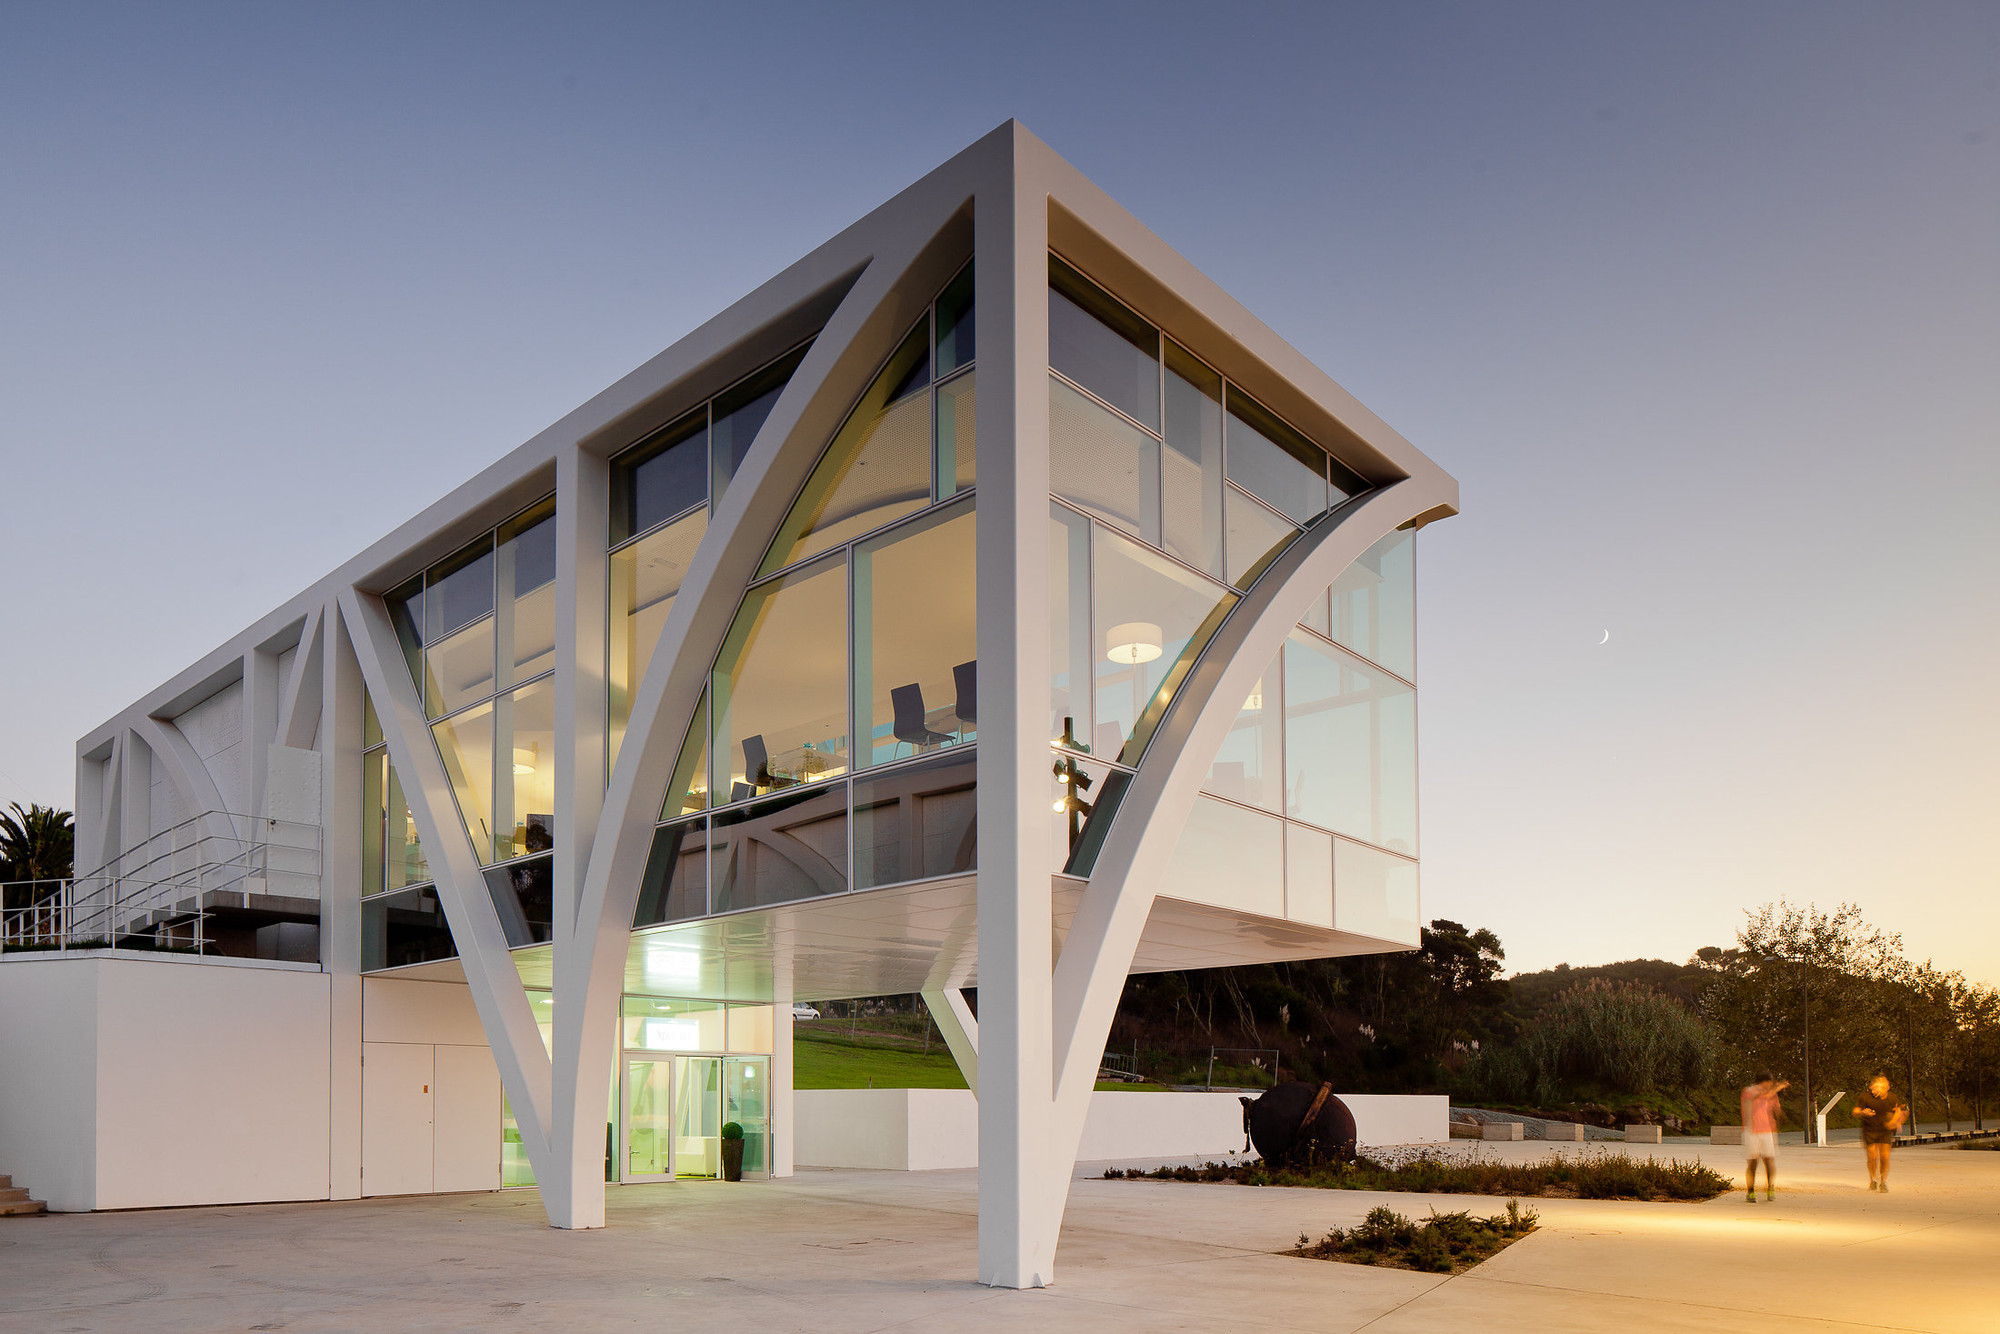 Marina douro barbosa guimaraes architects archdaily for Arquitectura and design